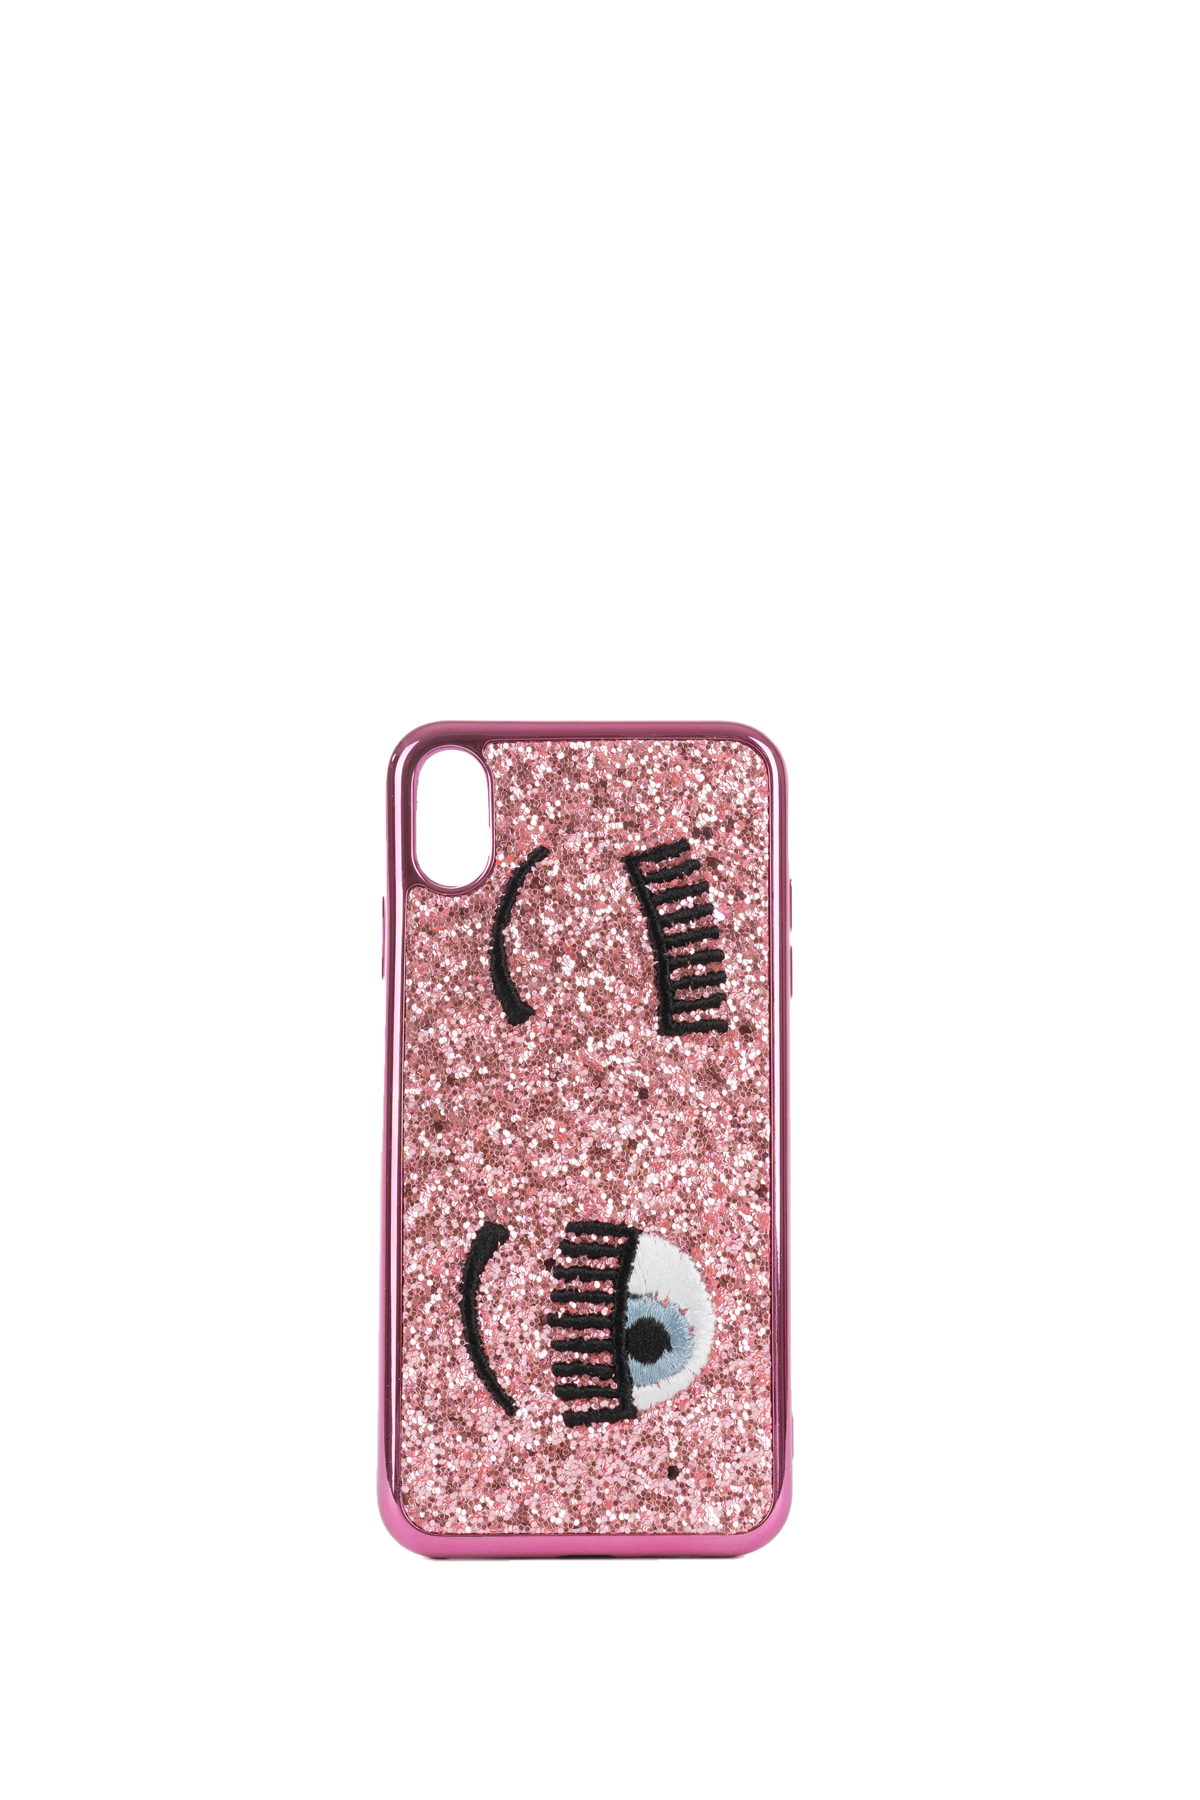 cover iphone chiara ferragni